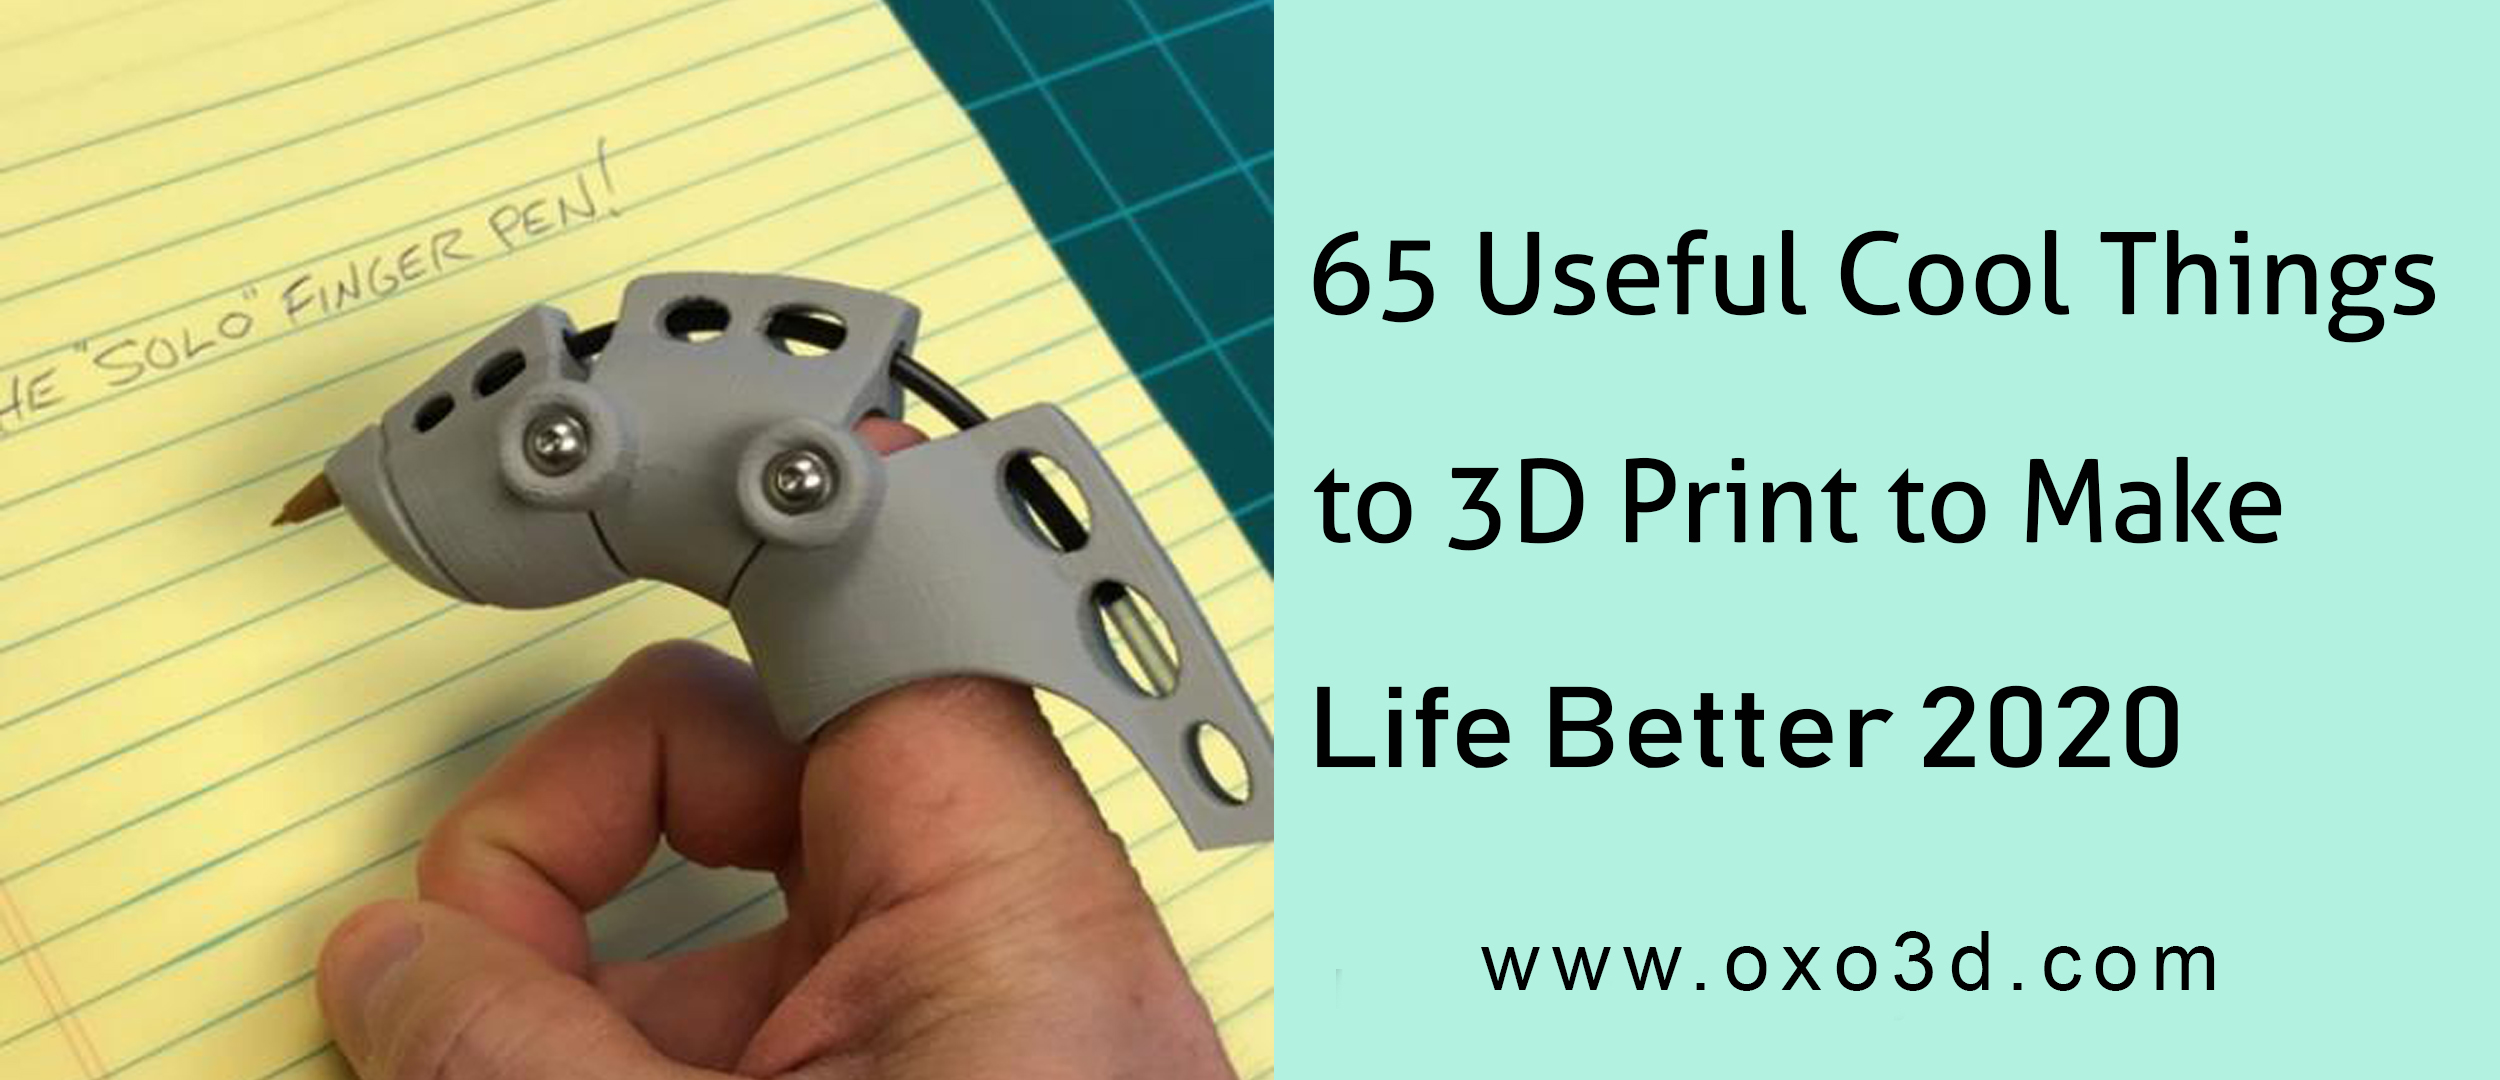 65 Cool Things to 3D Print to Make Life Better in August 2020